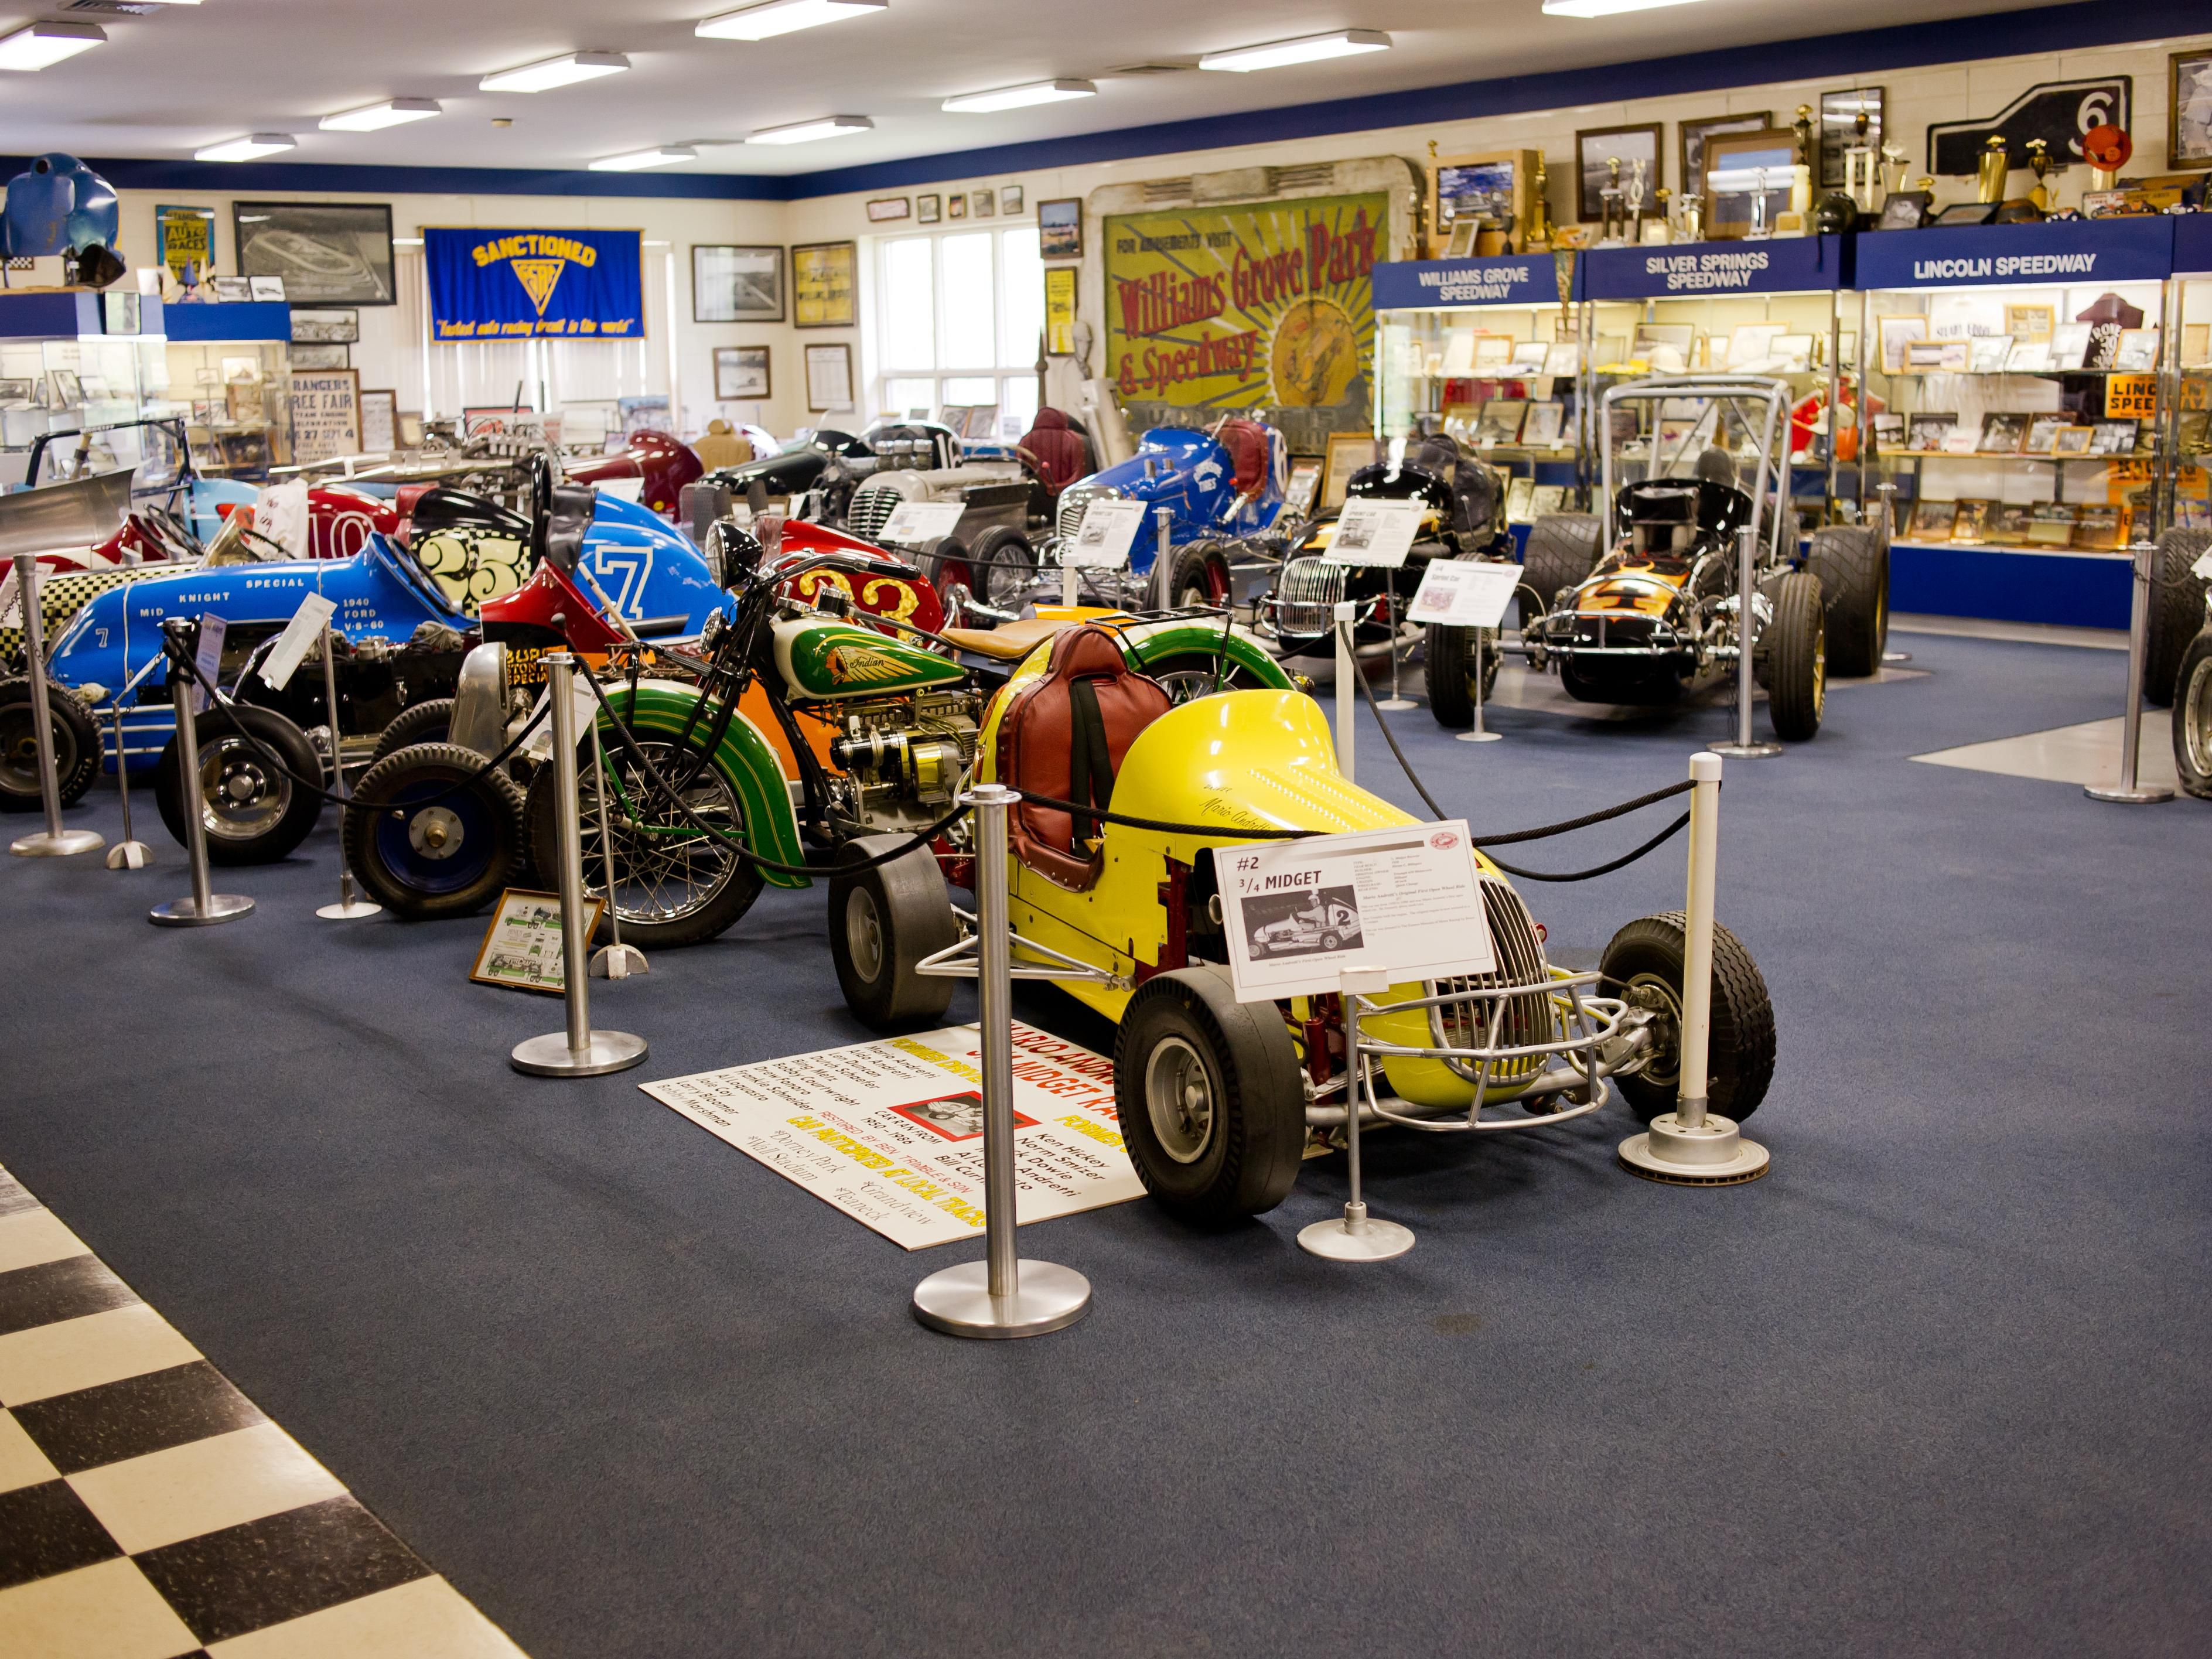 Eastern Museum of Auto Racing photo courtesy of York County CVB